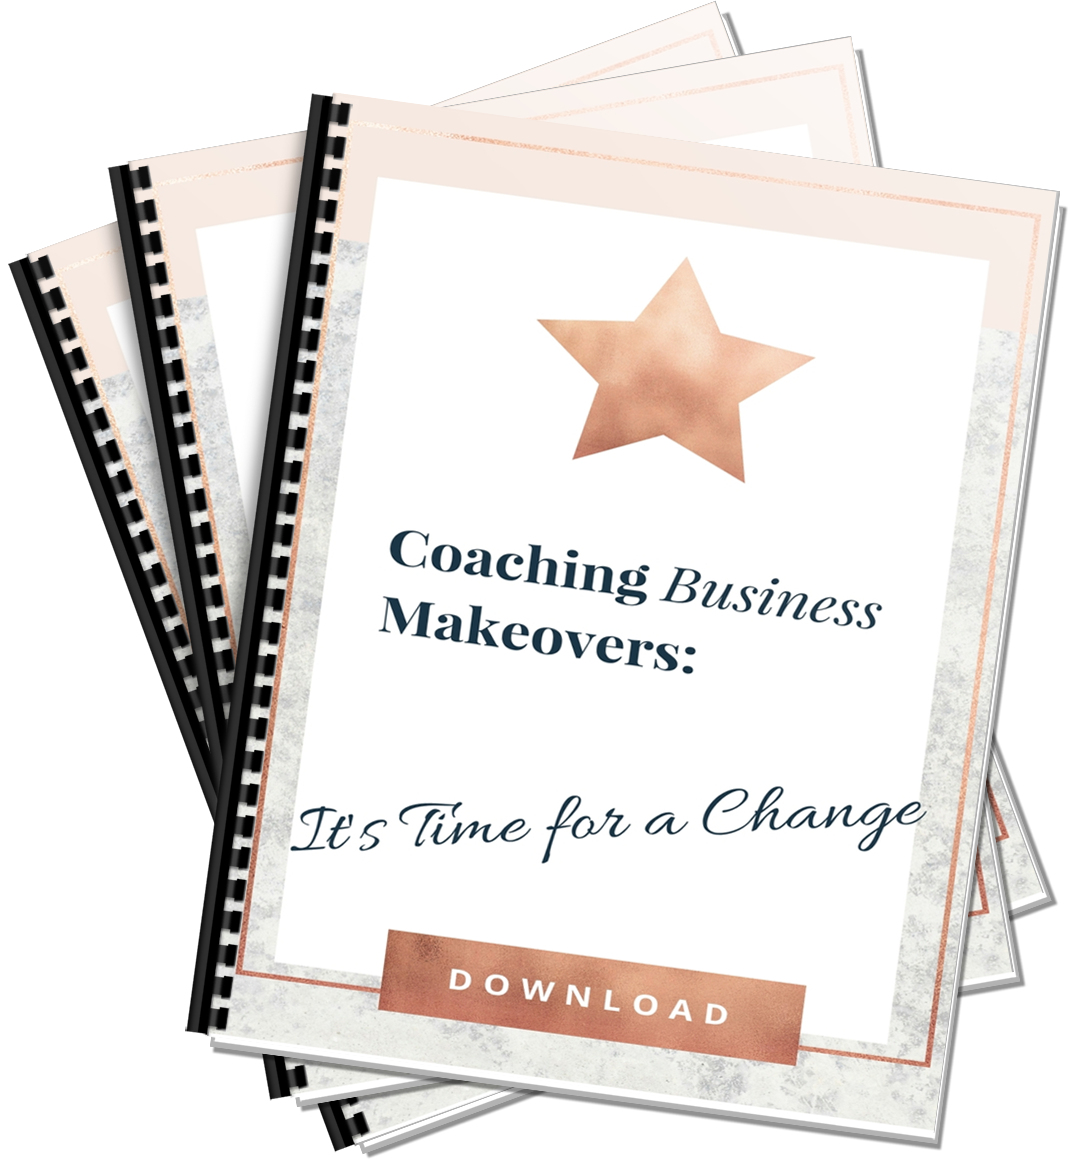 Coaching business makeovers